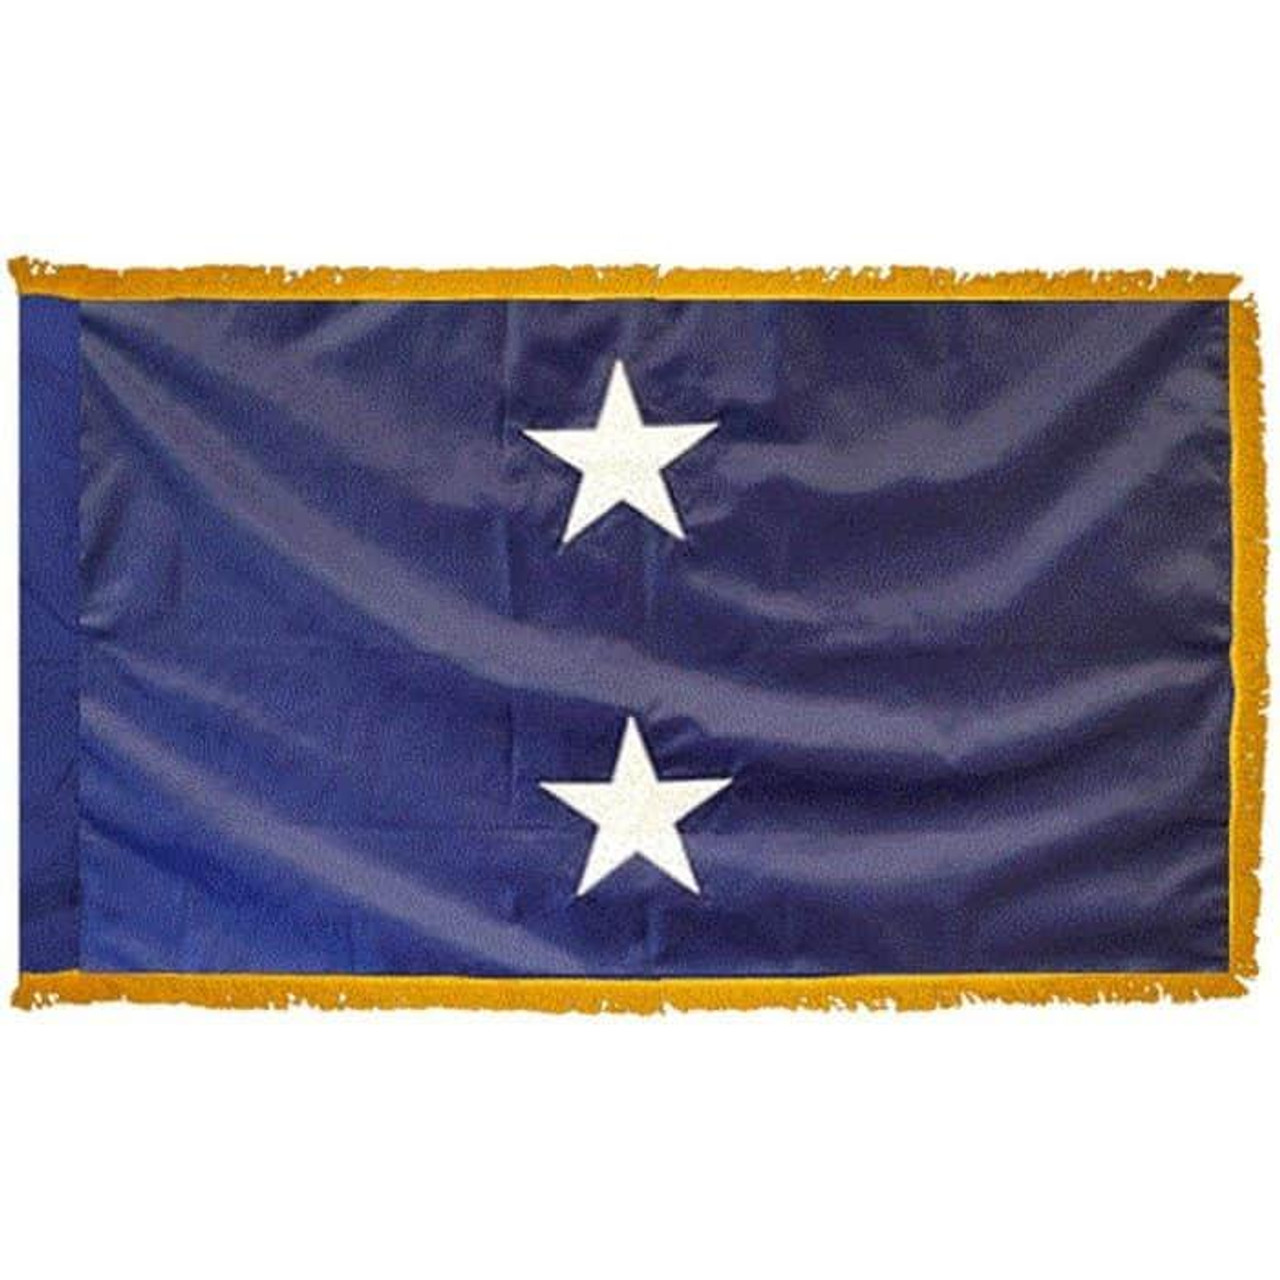 Navy Seagoing 2 Star Officer Indoor Flag